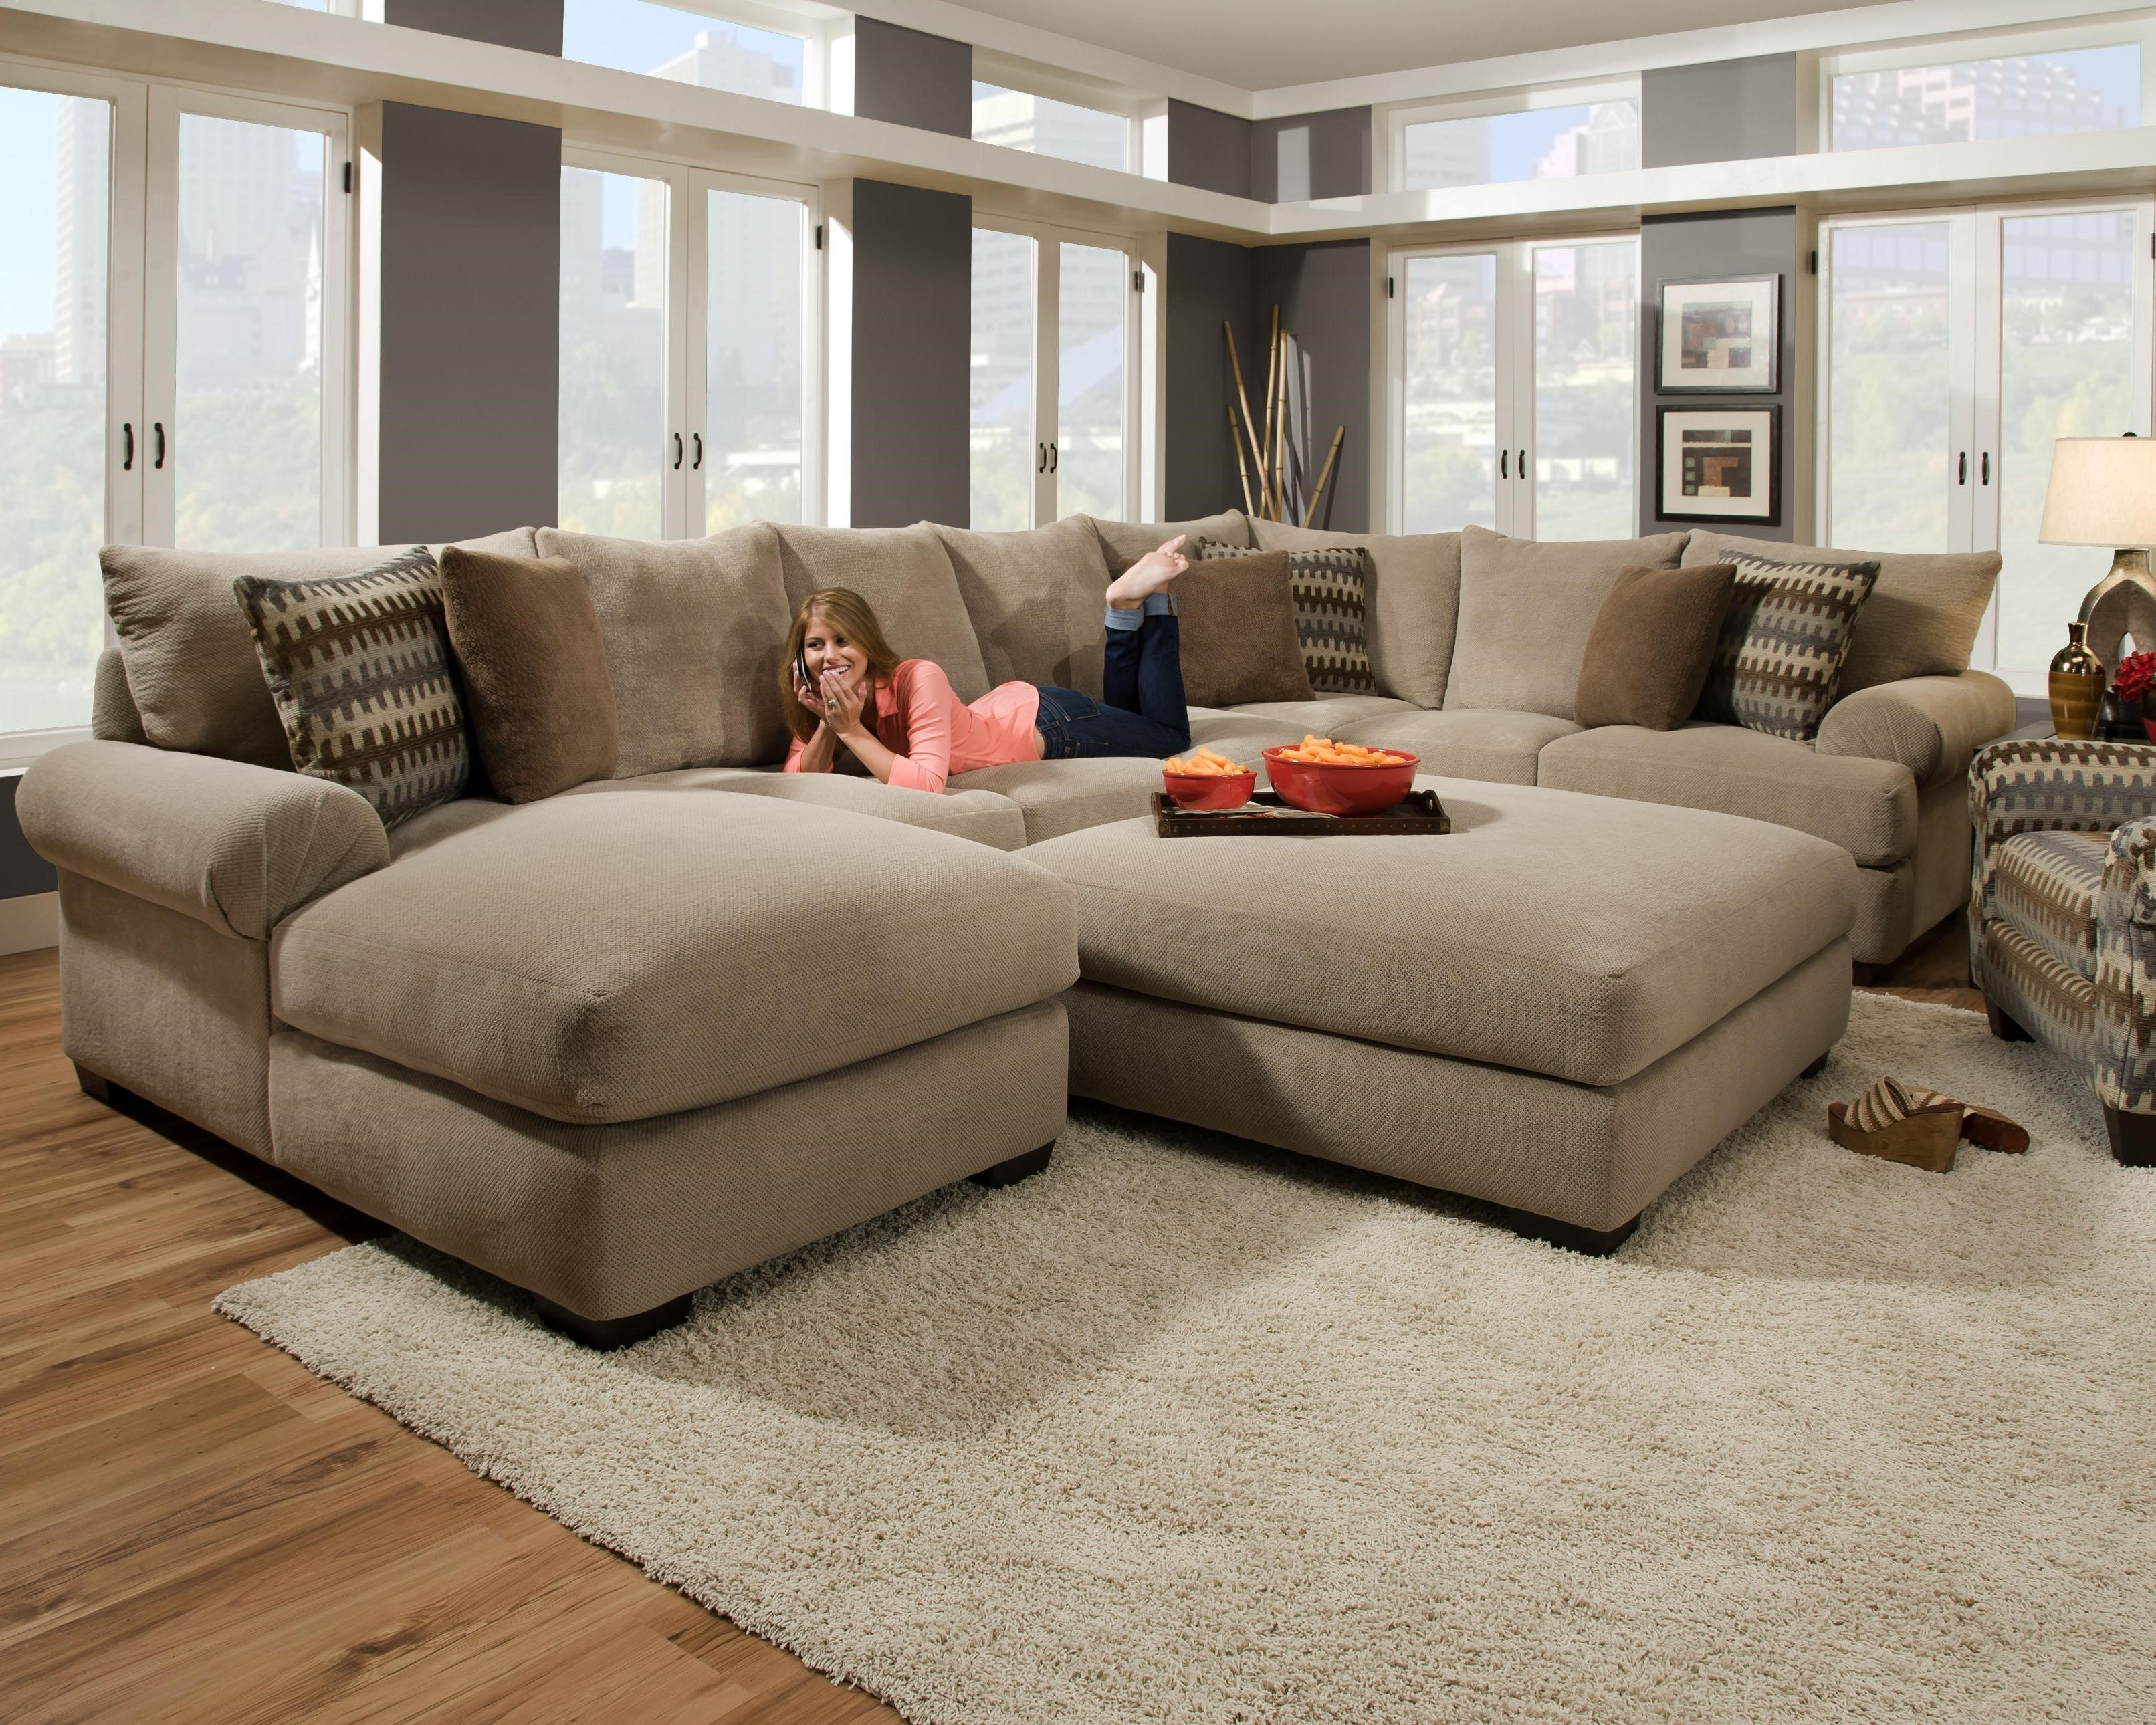 2019 Large Sectional Sofas Throughout Living Room: Large Sectional Sofas With Photo In Wall Also Wooden (View 1 of 20)